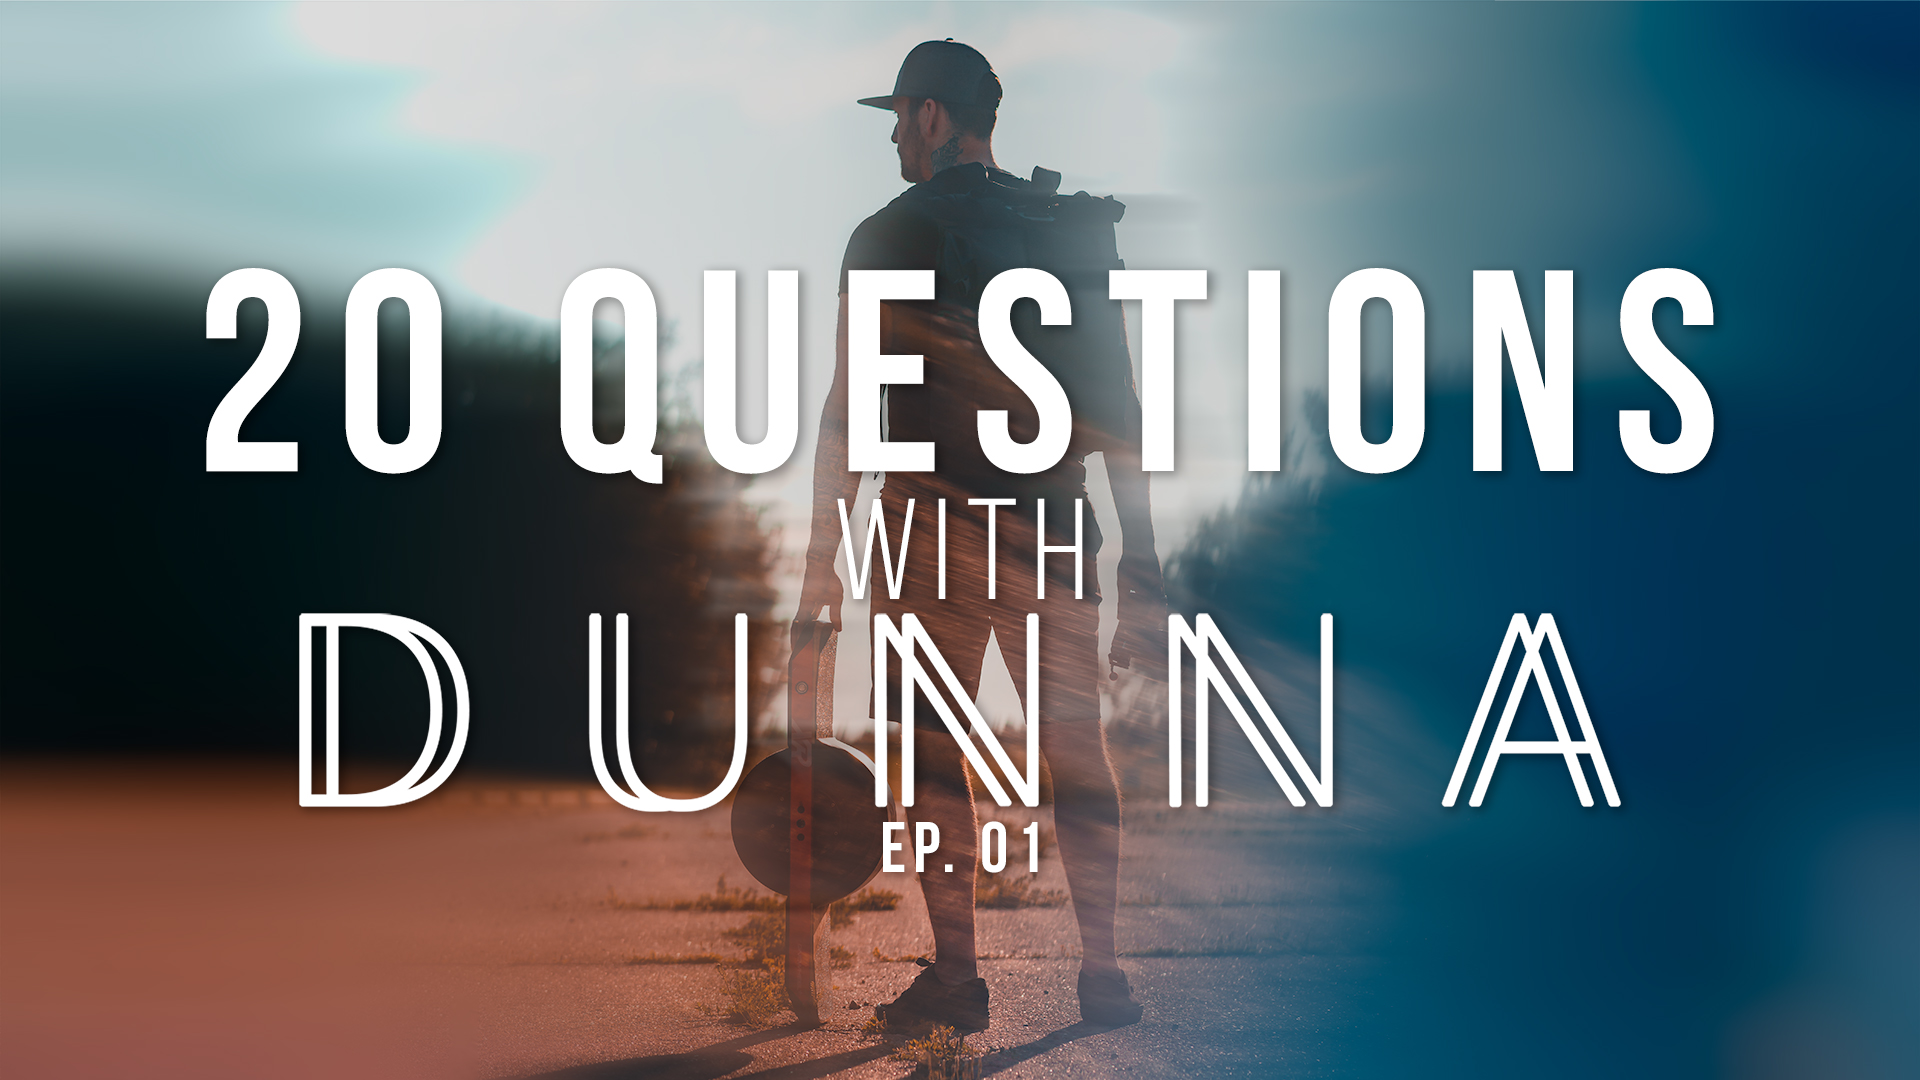 20 Questions With Dunna EP. 01 - Cameras, Wardrobe and Bananas! (Q&A)